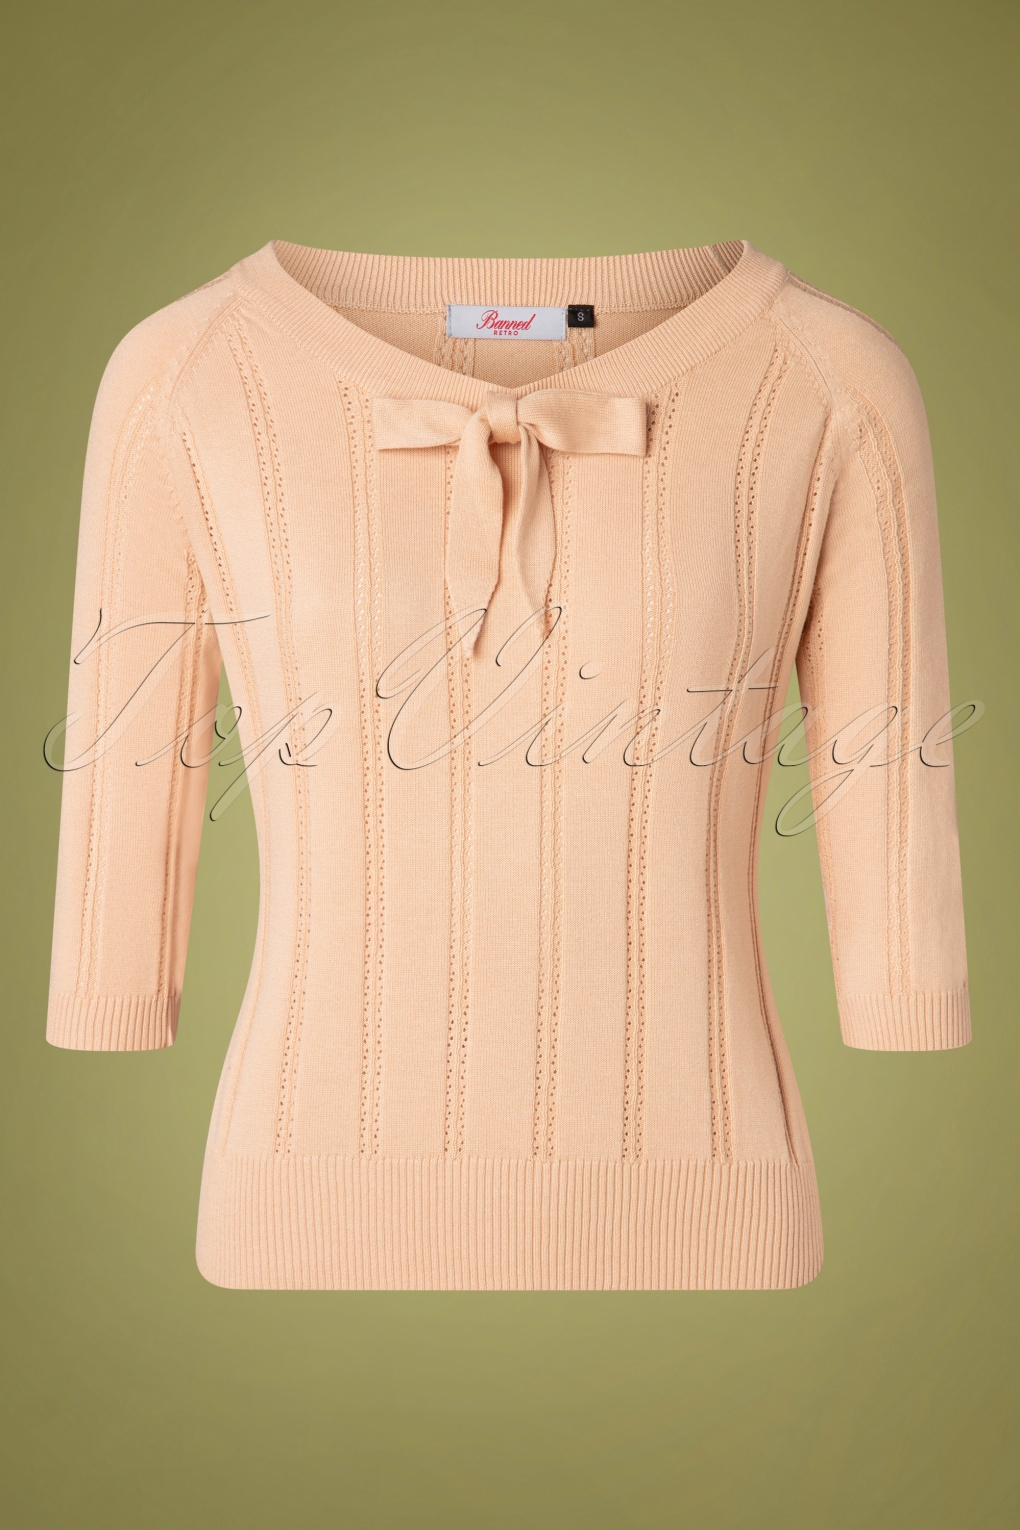 1950s Sweaters, 50s Cardigans, 50s Jumpers 50s Belle Bow Pointelle Top in Beige £34.36 AT vintagedancer.com